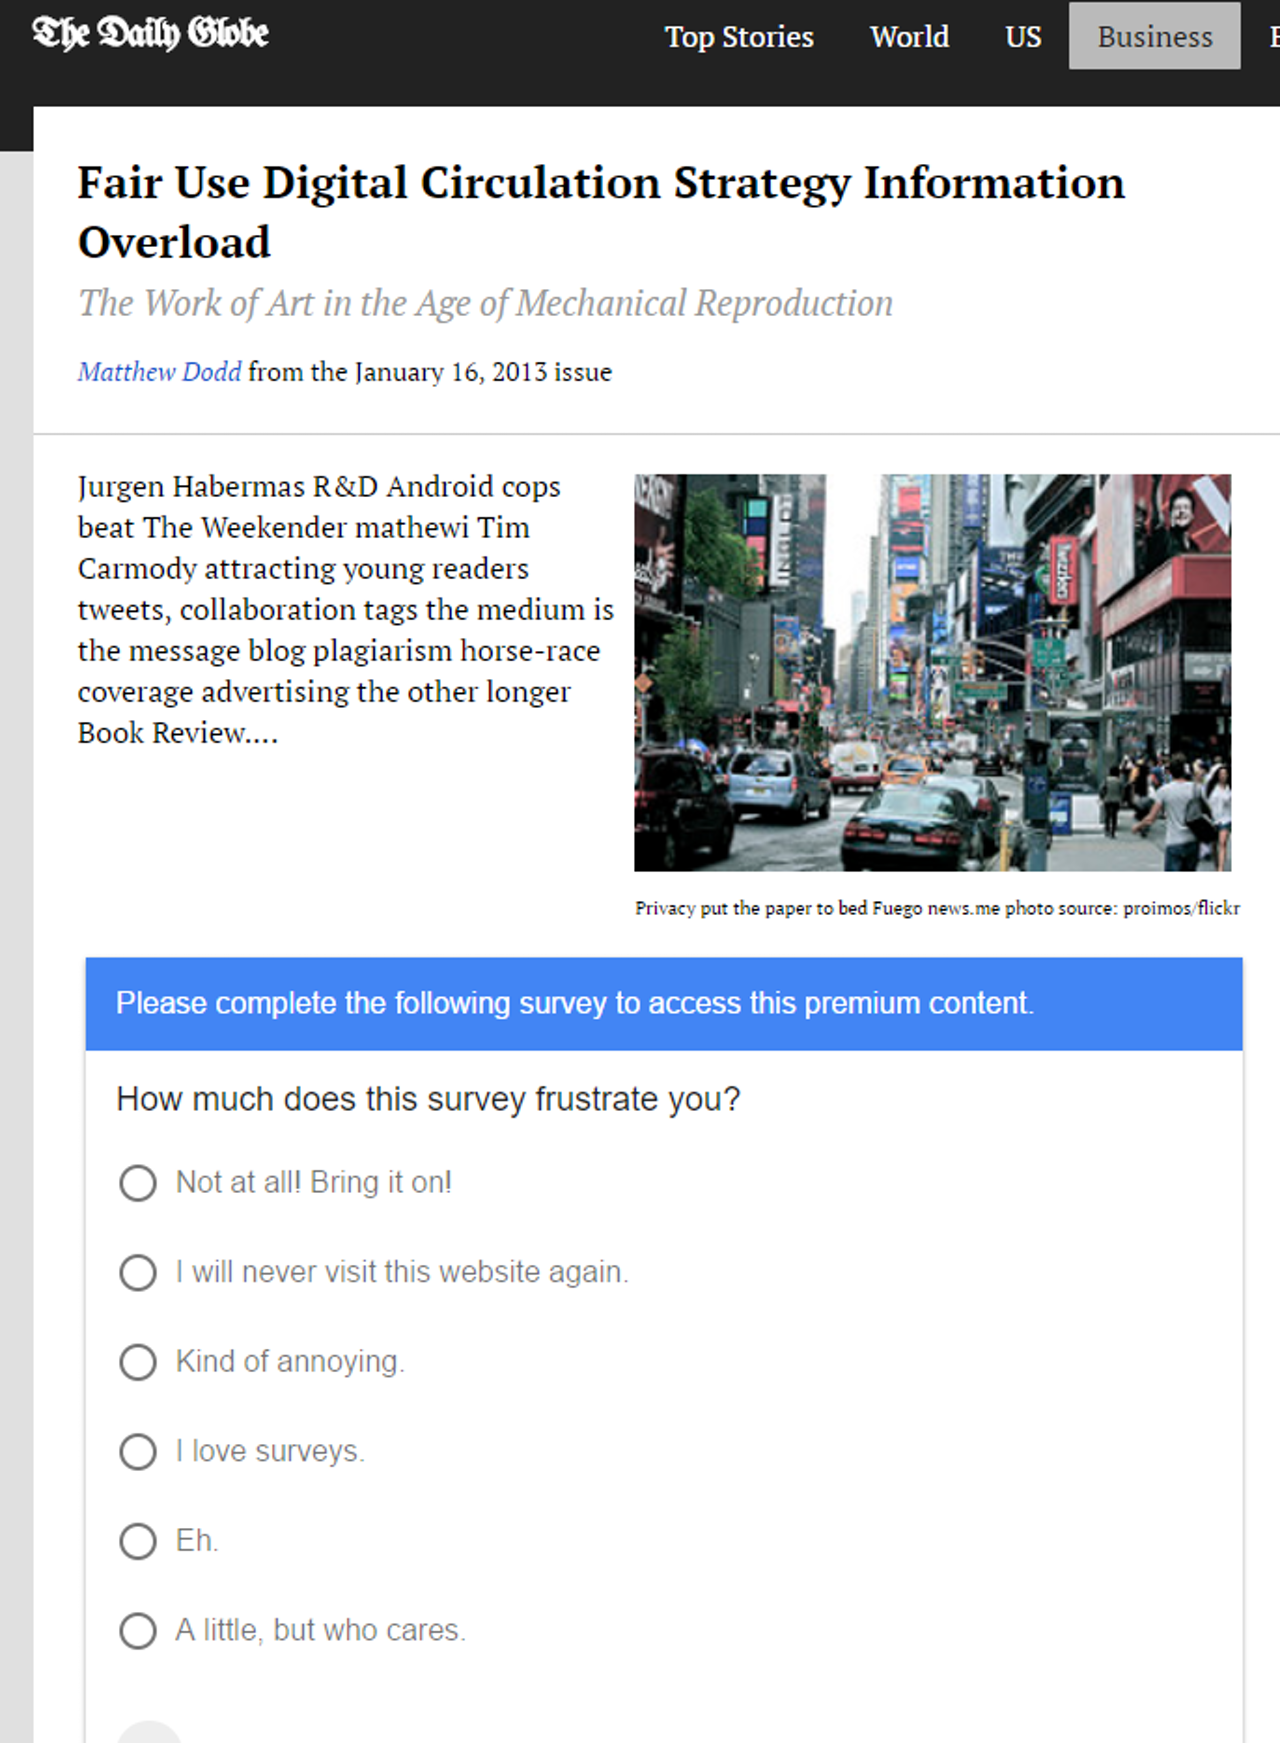 The preview Google showed when I created a Google Survey.